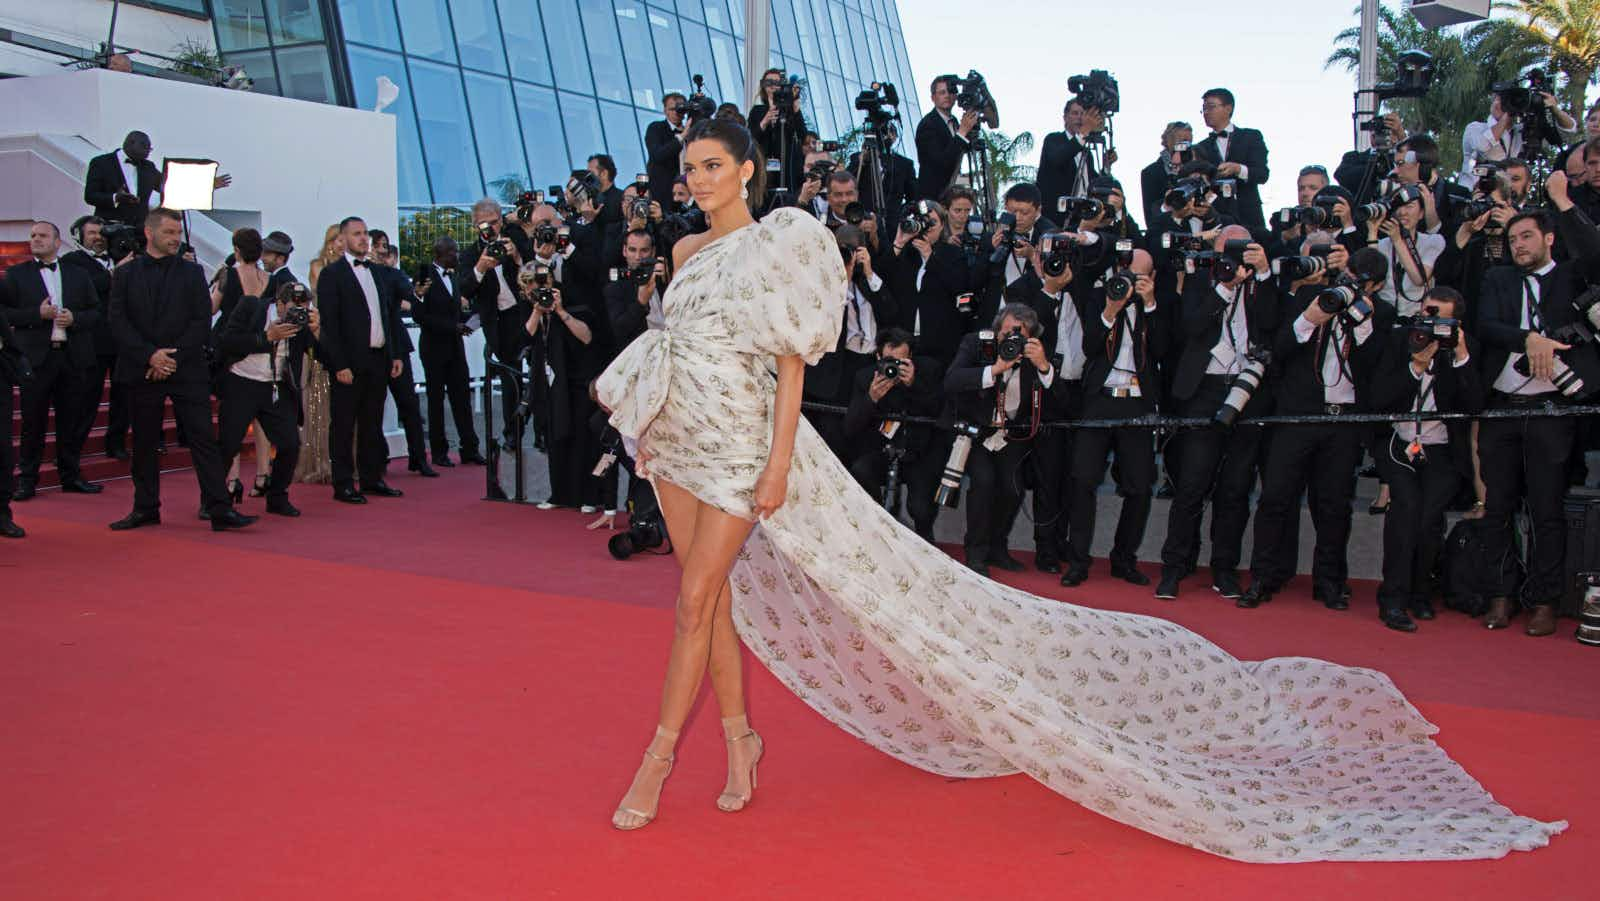 Cannes Film Festival 2019: why the city's new makeover will steal the show